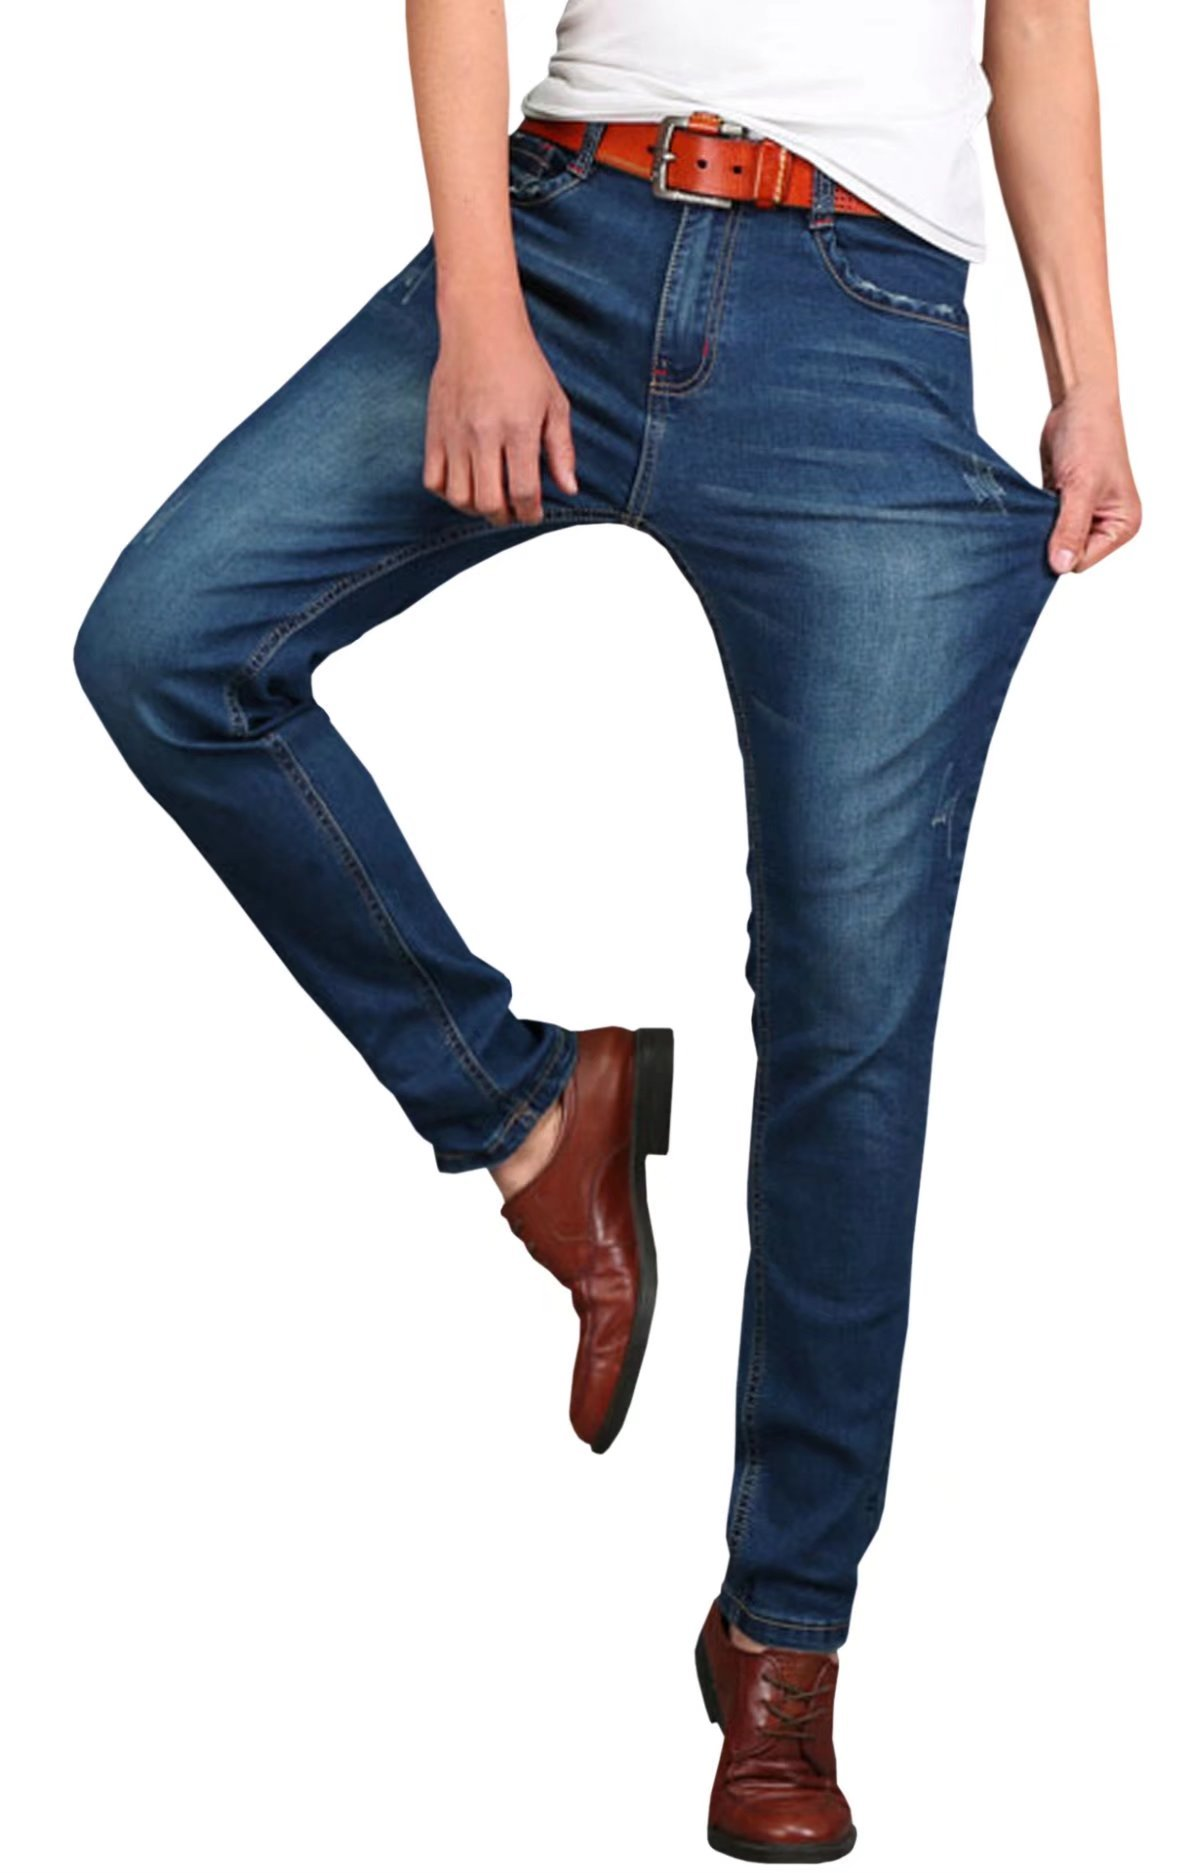 HENGAO Men's Casual Stretch Jeans